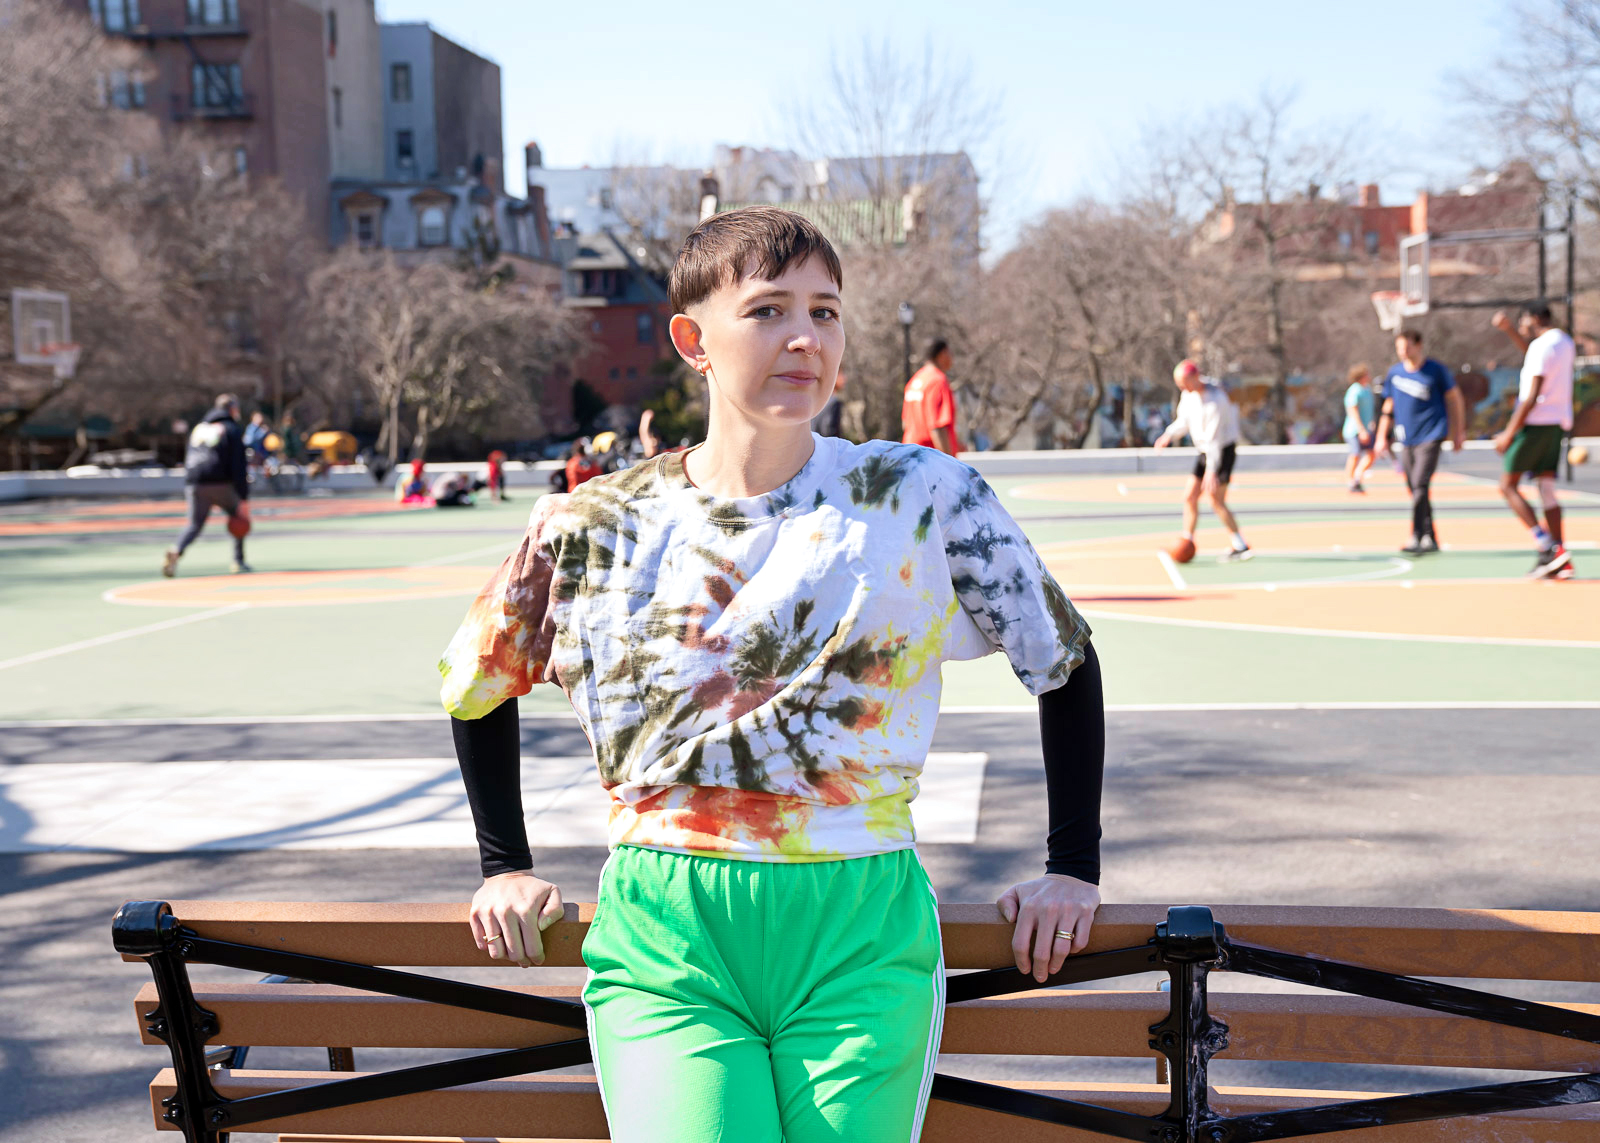 Katy Pyle, wearing a tie dye shirt and bright green shorts, leans against a park bench next to a basketball court.